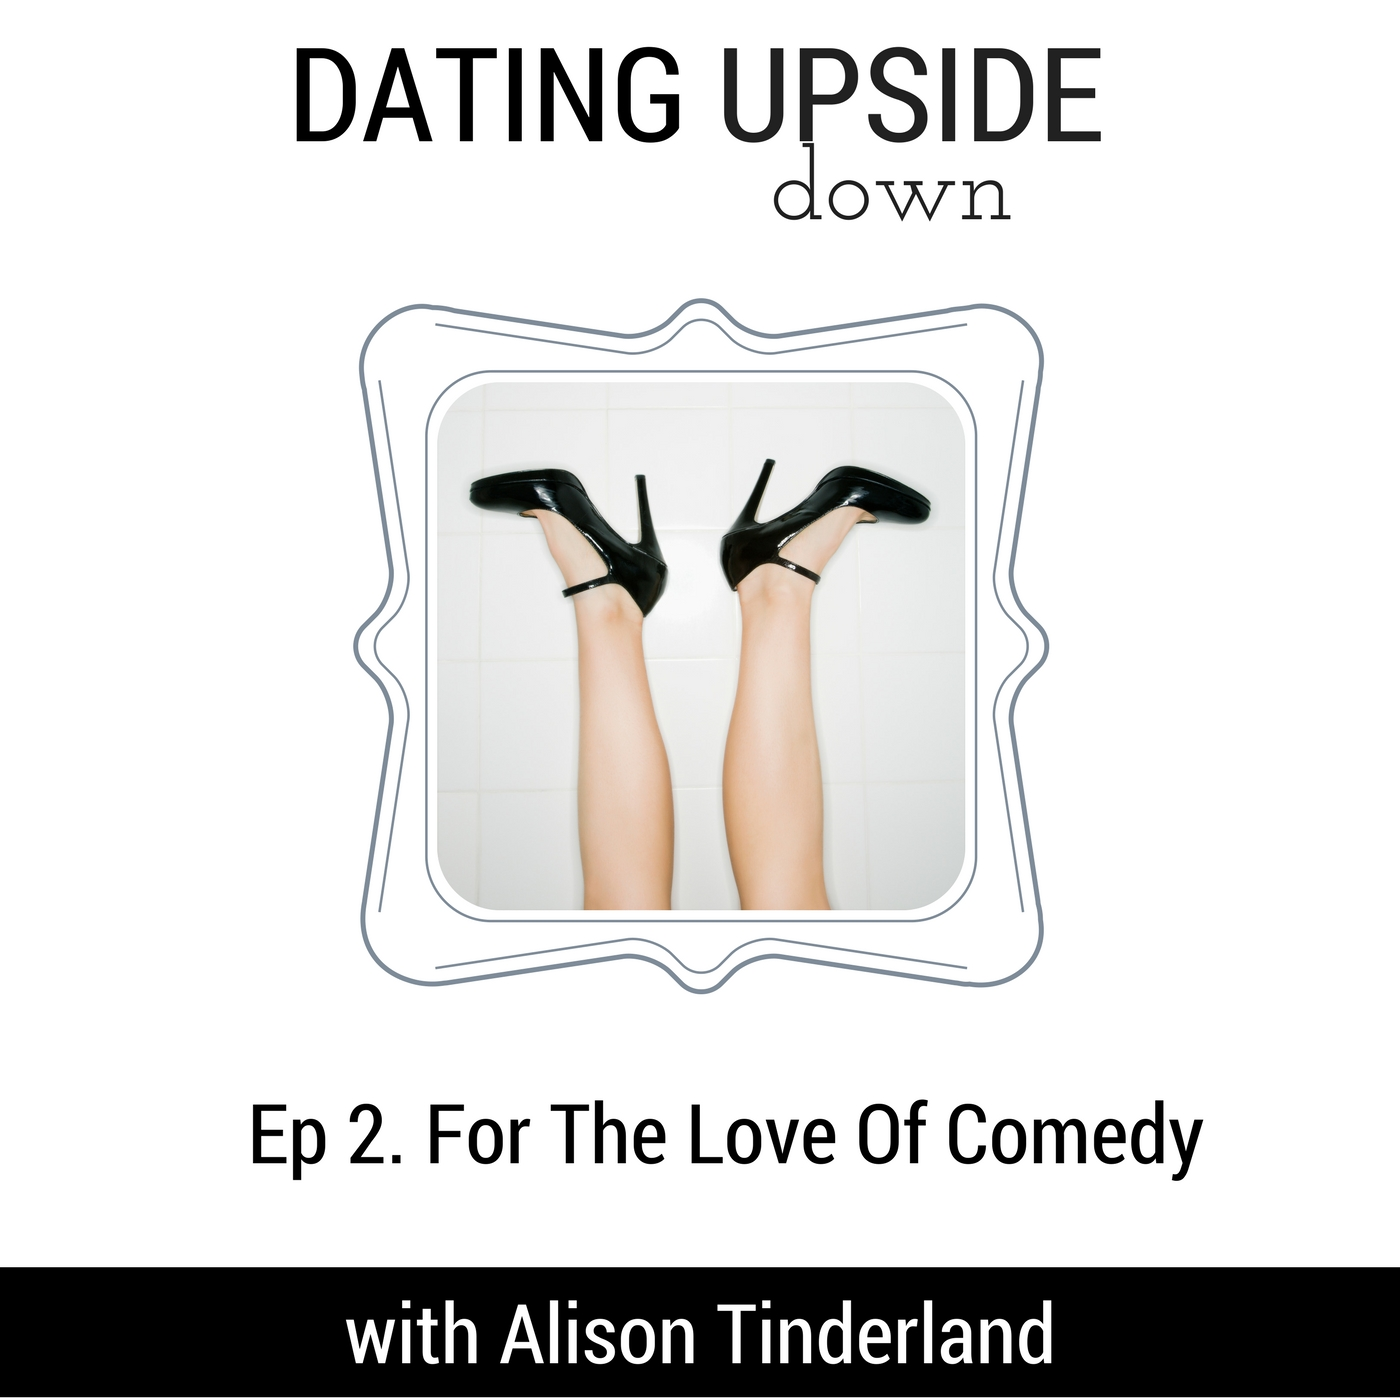 S1E2. For The Love of Comedy